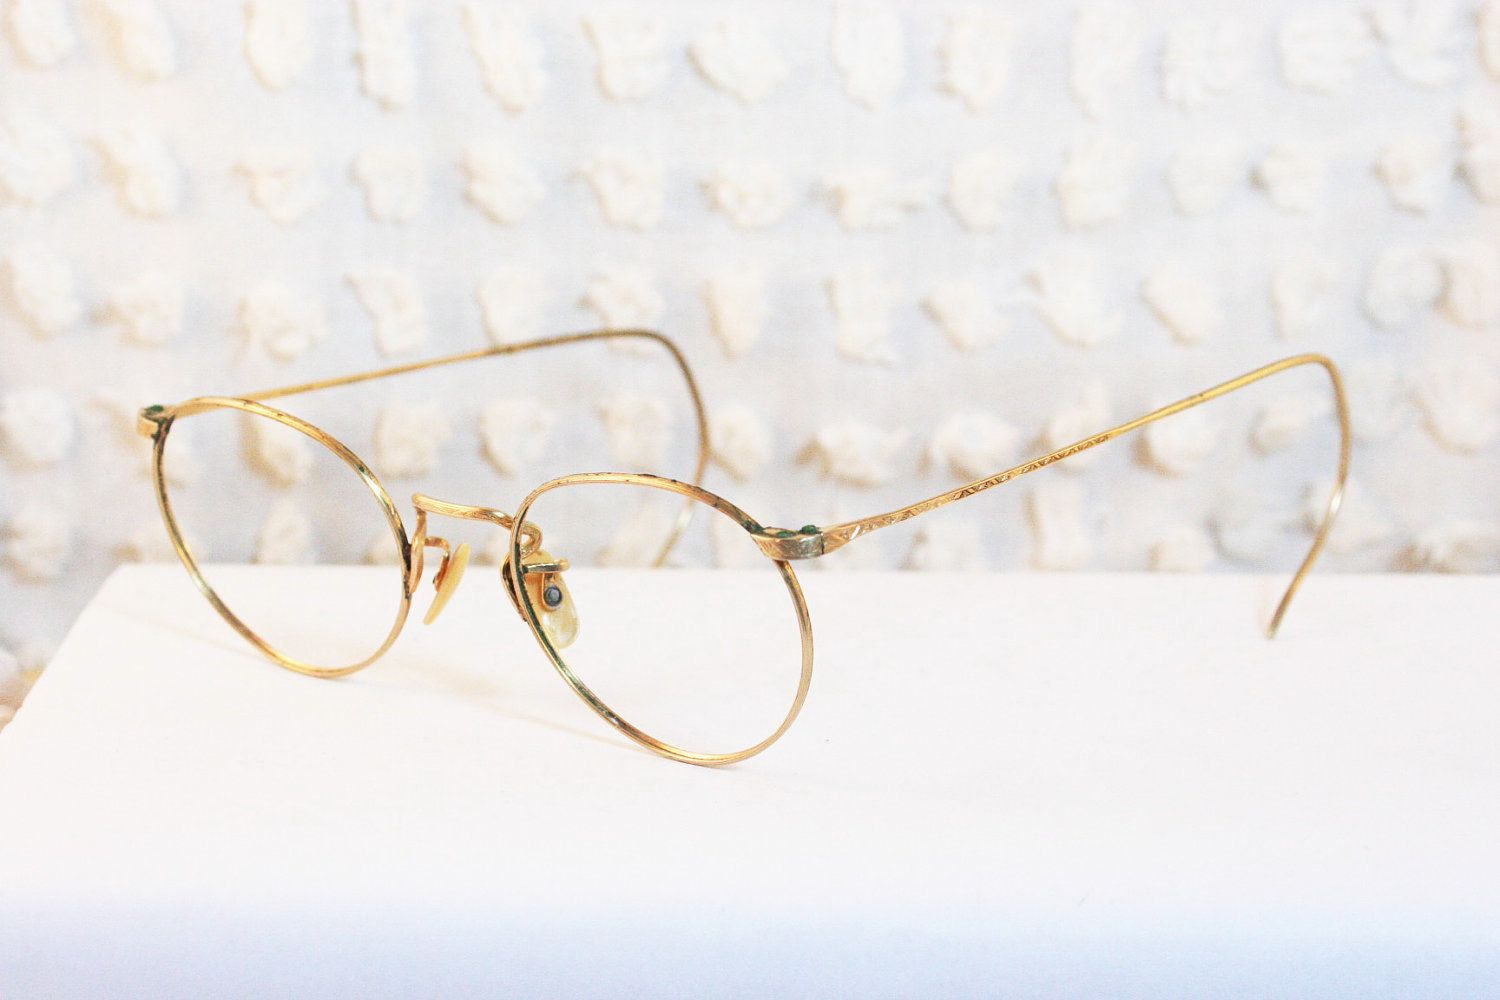 40s Round Glasses 1940s Wire Rim Eyeglasses Yellow Gold ...